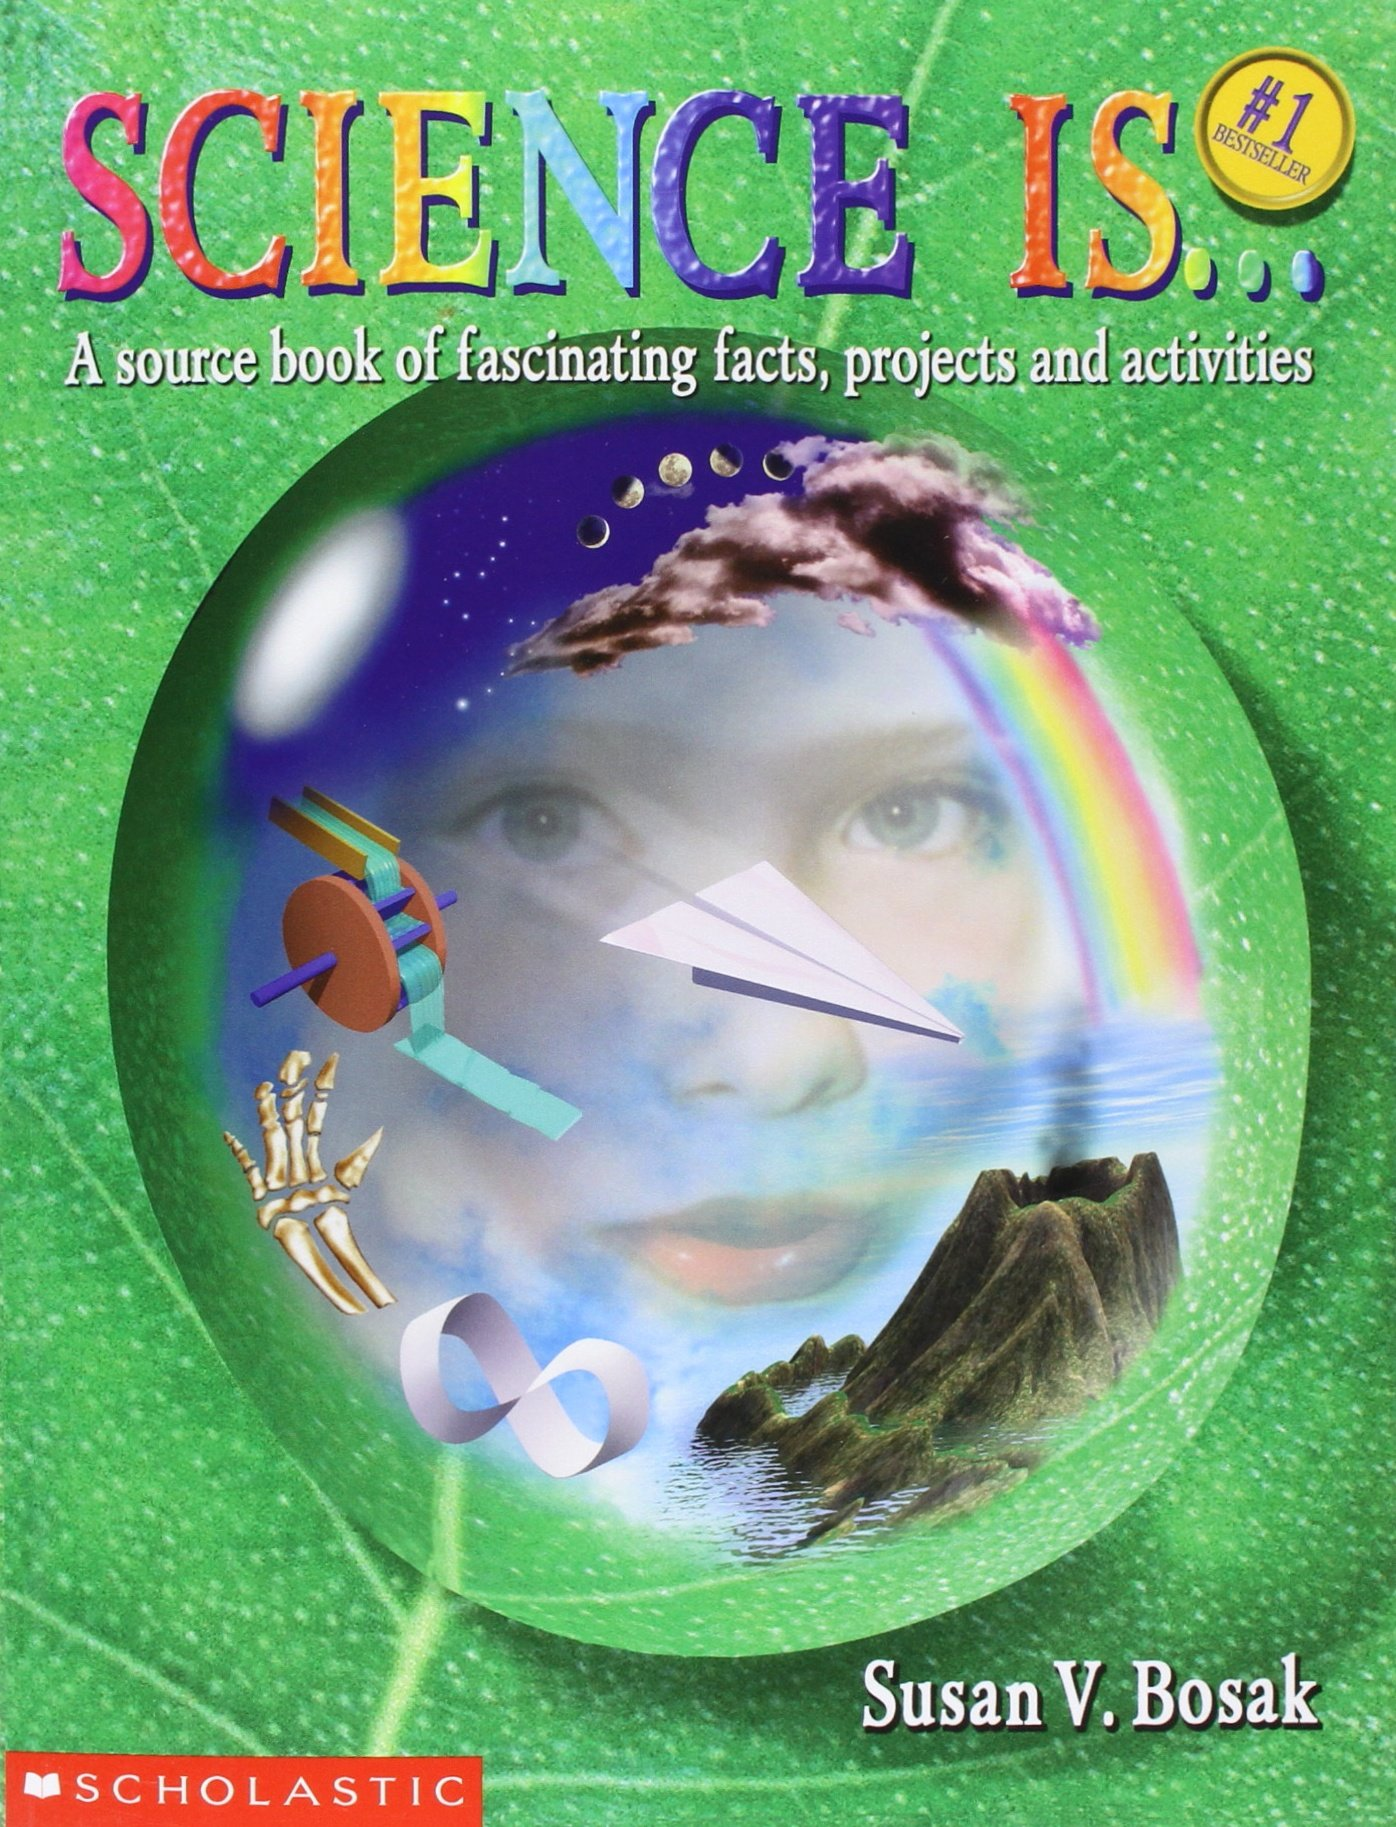 Science Is...: A source book of fascinating facts, projects and activities